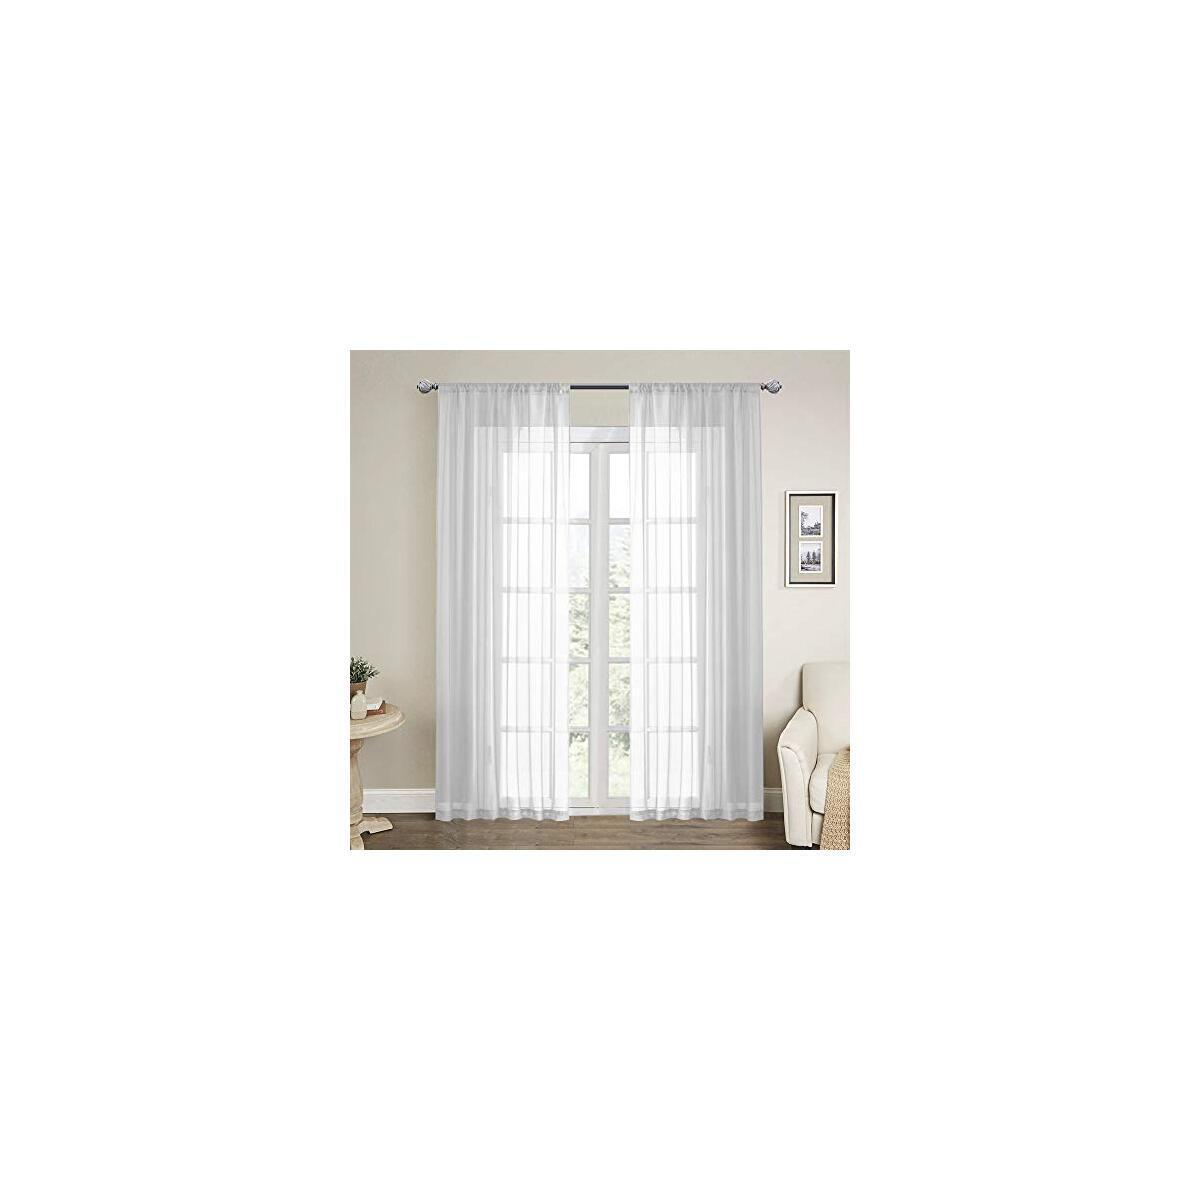 CNLAY Solid Sheer Curtains 84 inches Long, White Sheer Voile Rod Pocket Window Treatments Curtain, 2 Panels 52